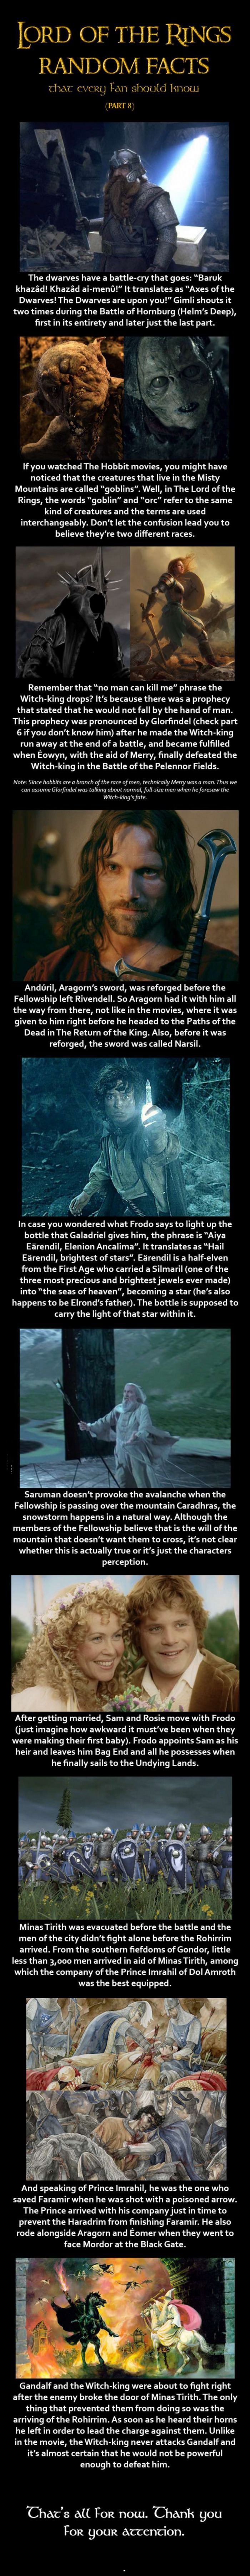 He does attack Gandalf in the movie